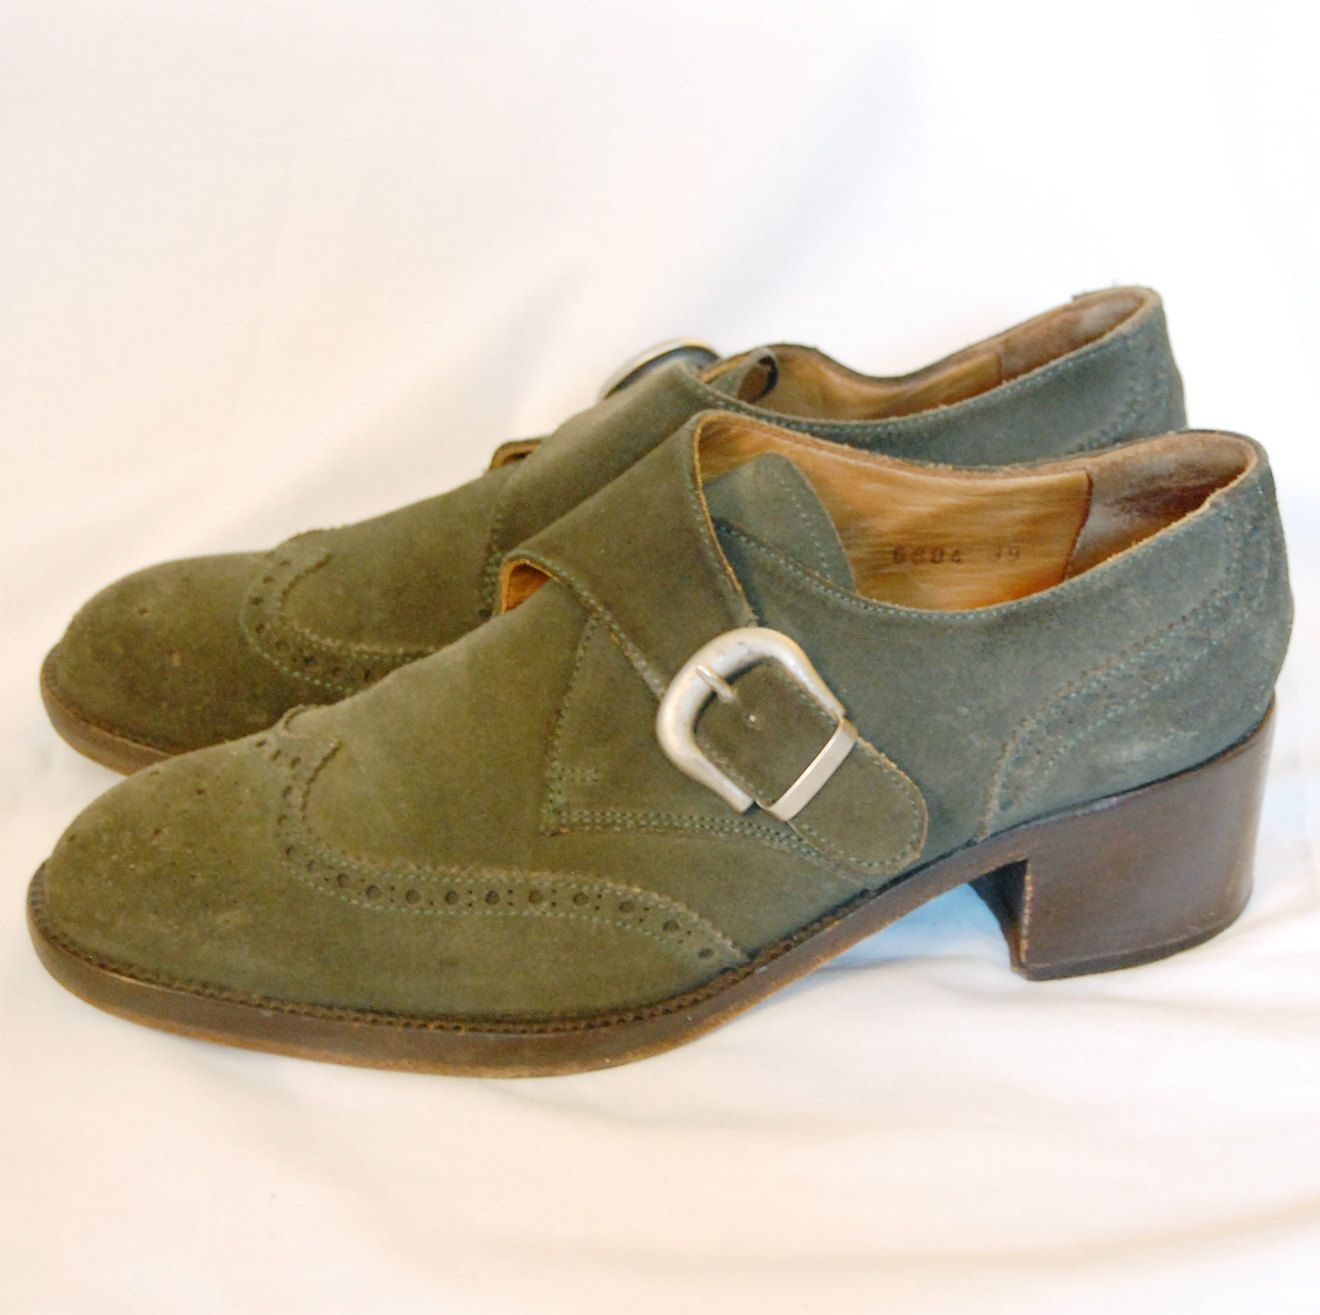 Vintage 1990s Ankle Western Shoes / Womens Size by ... |1990s Womens Boots